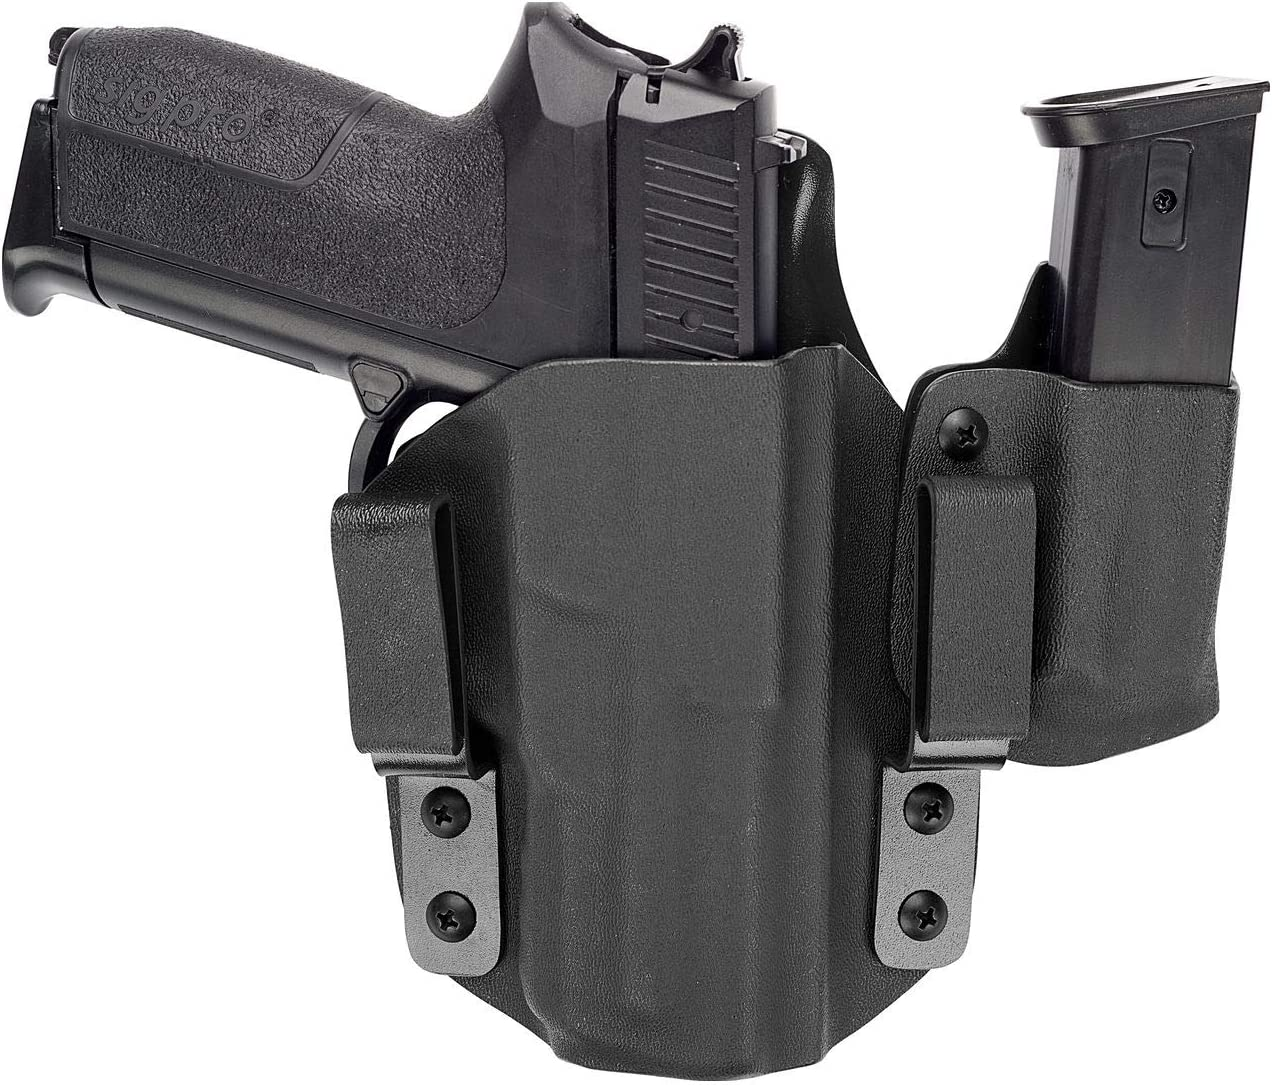 Craft Holsters SW SW99 Cal Max 84% OFF .45 - Holster Compatible Holst Topics on TV AIWB